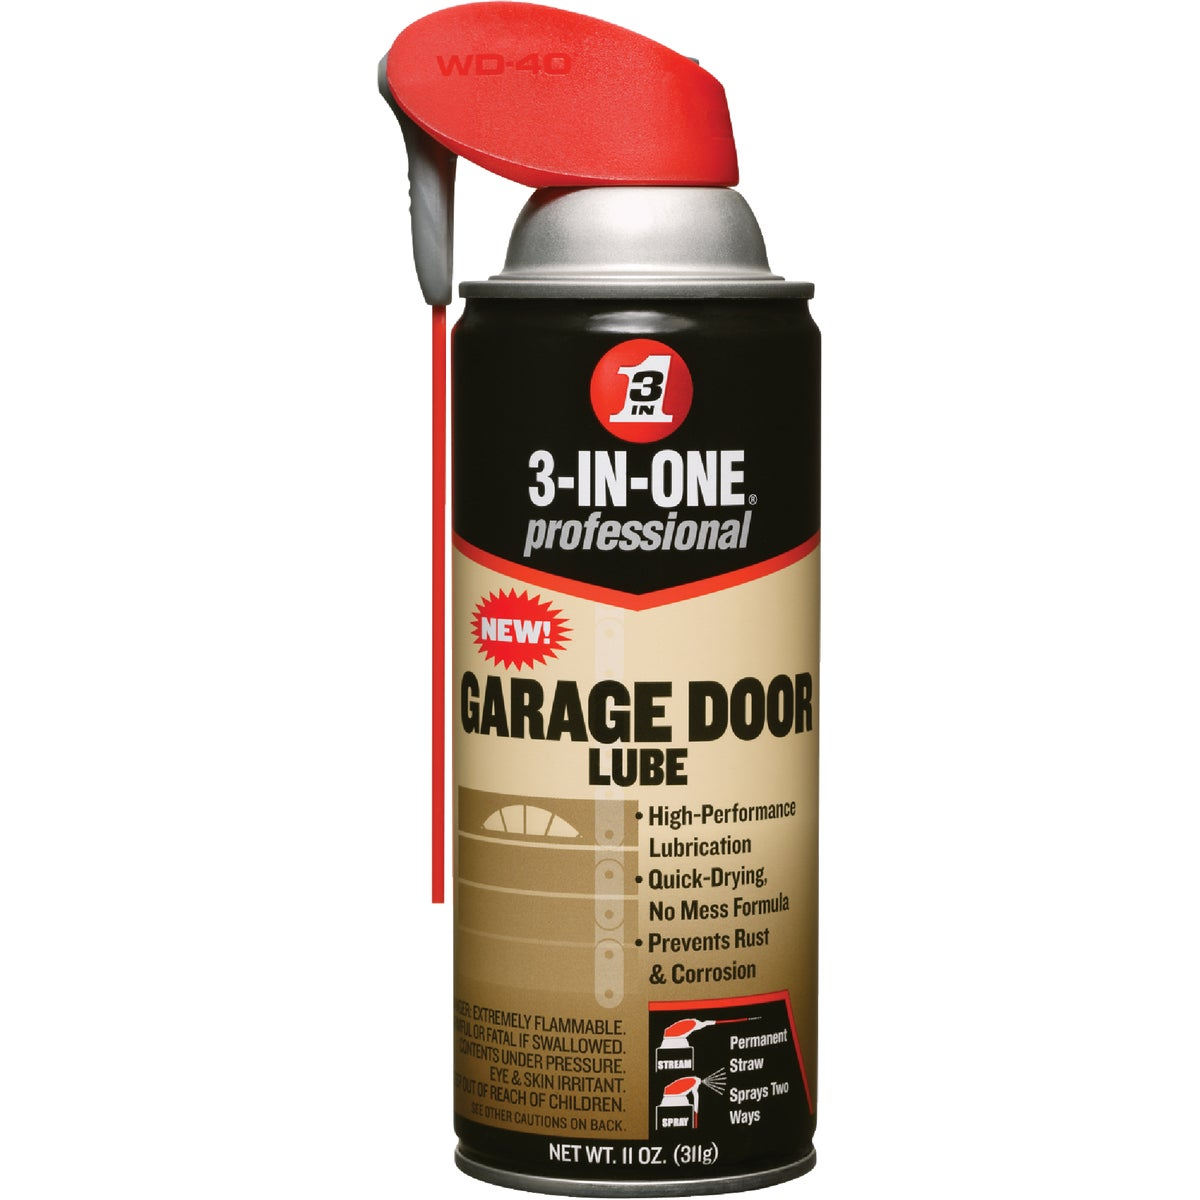 11OZ GARAGE DOOR LUBE